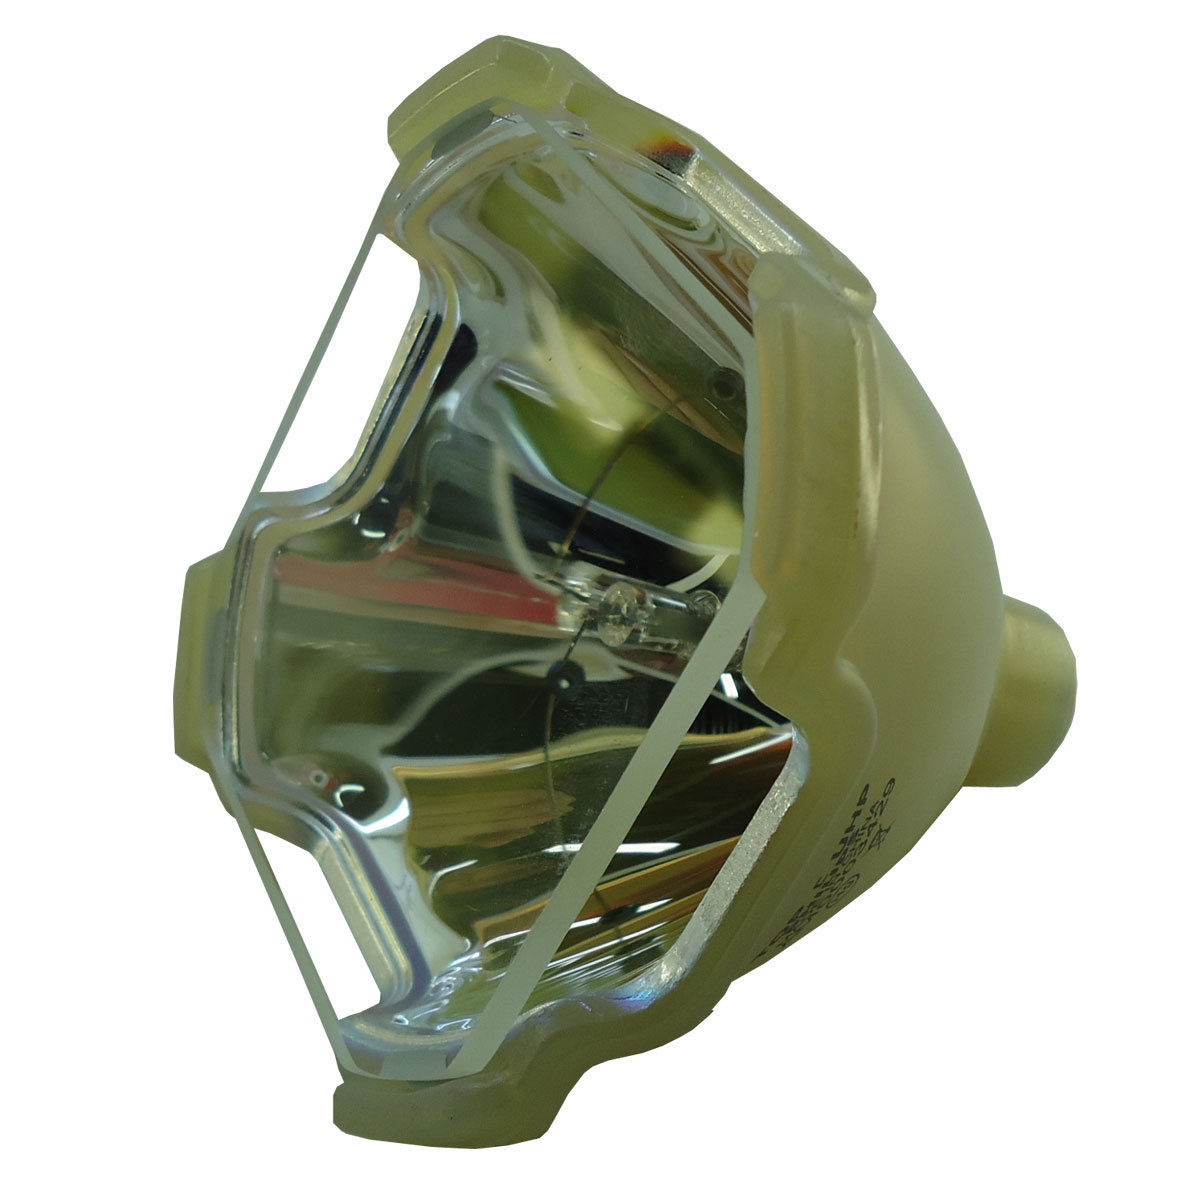 Compatible Bare Bulb 003-120183-01 for CHRISTIE LX120 / 103-006101-01 / 103-007101-01 Projector Lamp Bulb without housing 003 120183 01 bare lamp for christie lx120 103 006101 01 103 007101 01 projector